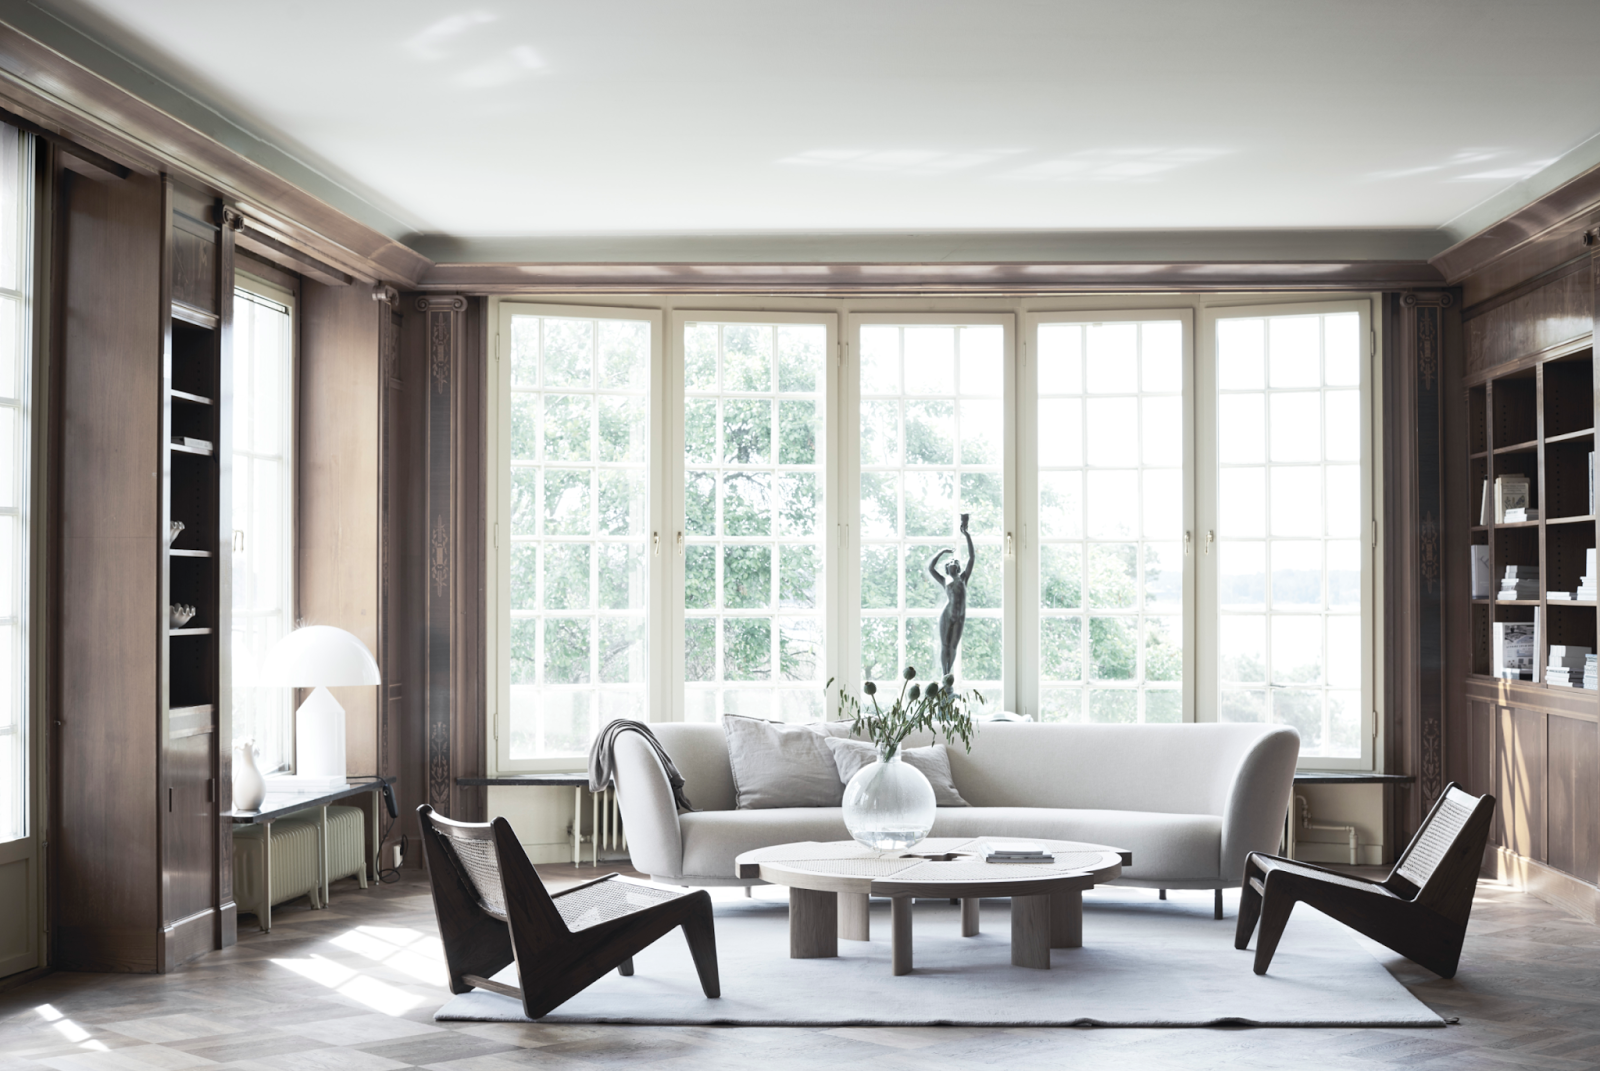 AMM blog: 5 living rooms that blend style and comfort